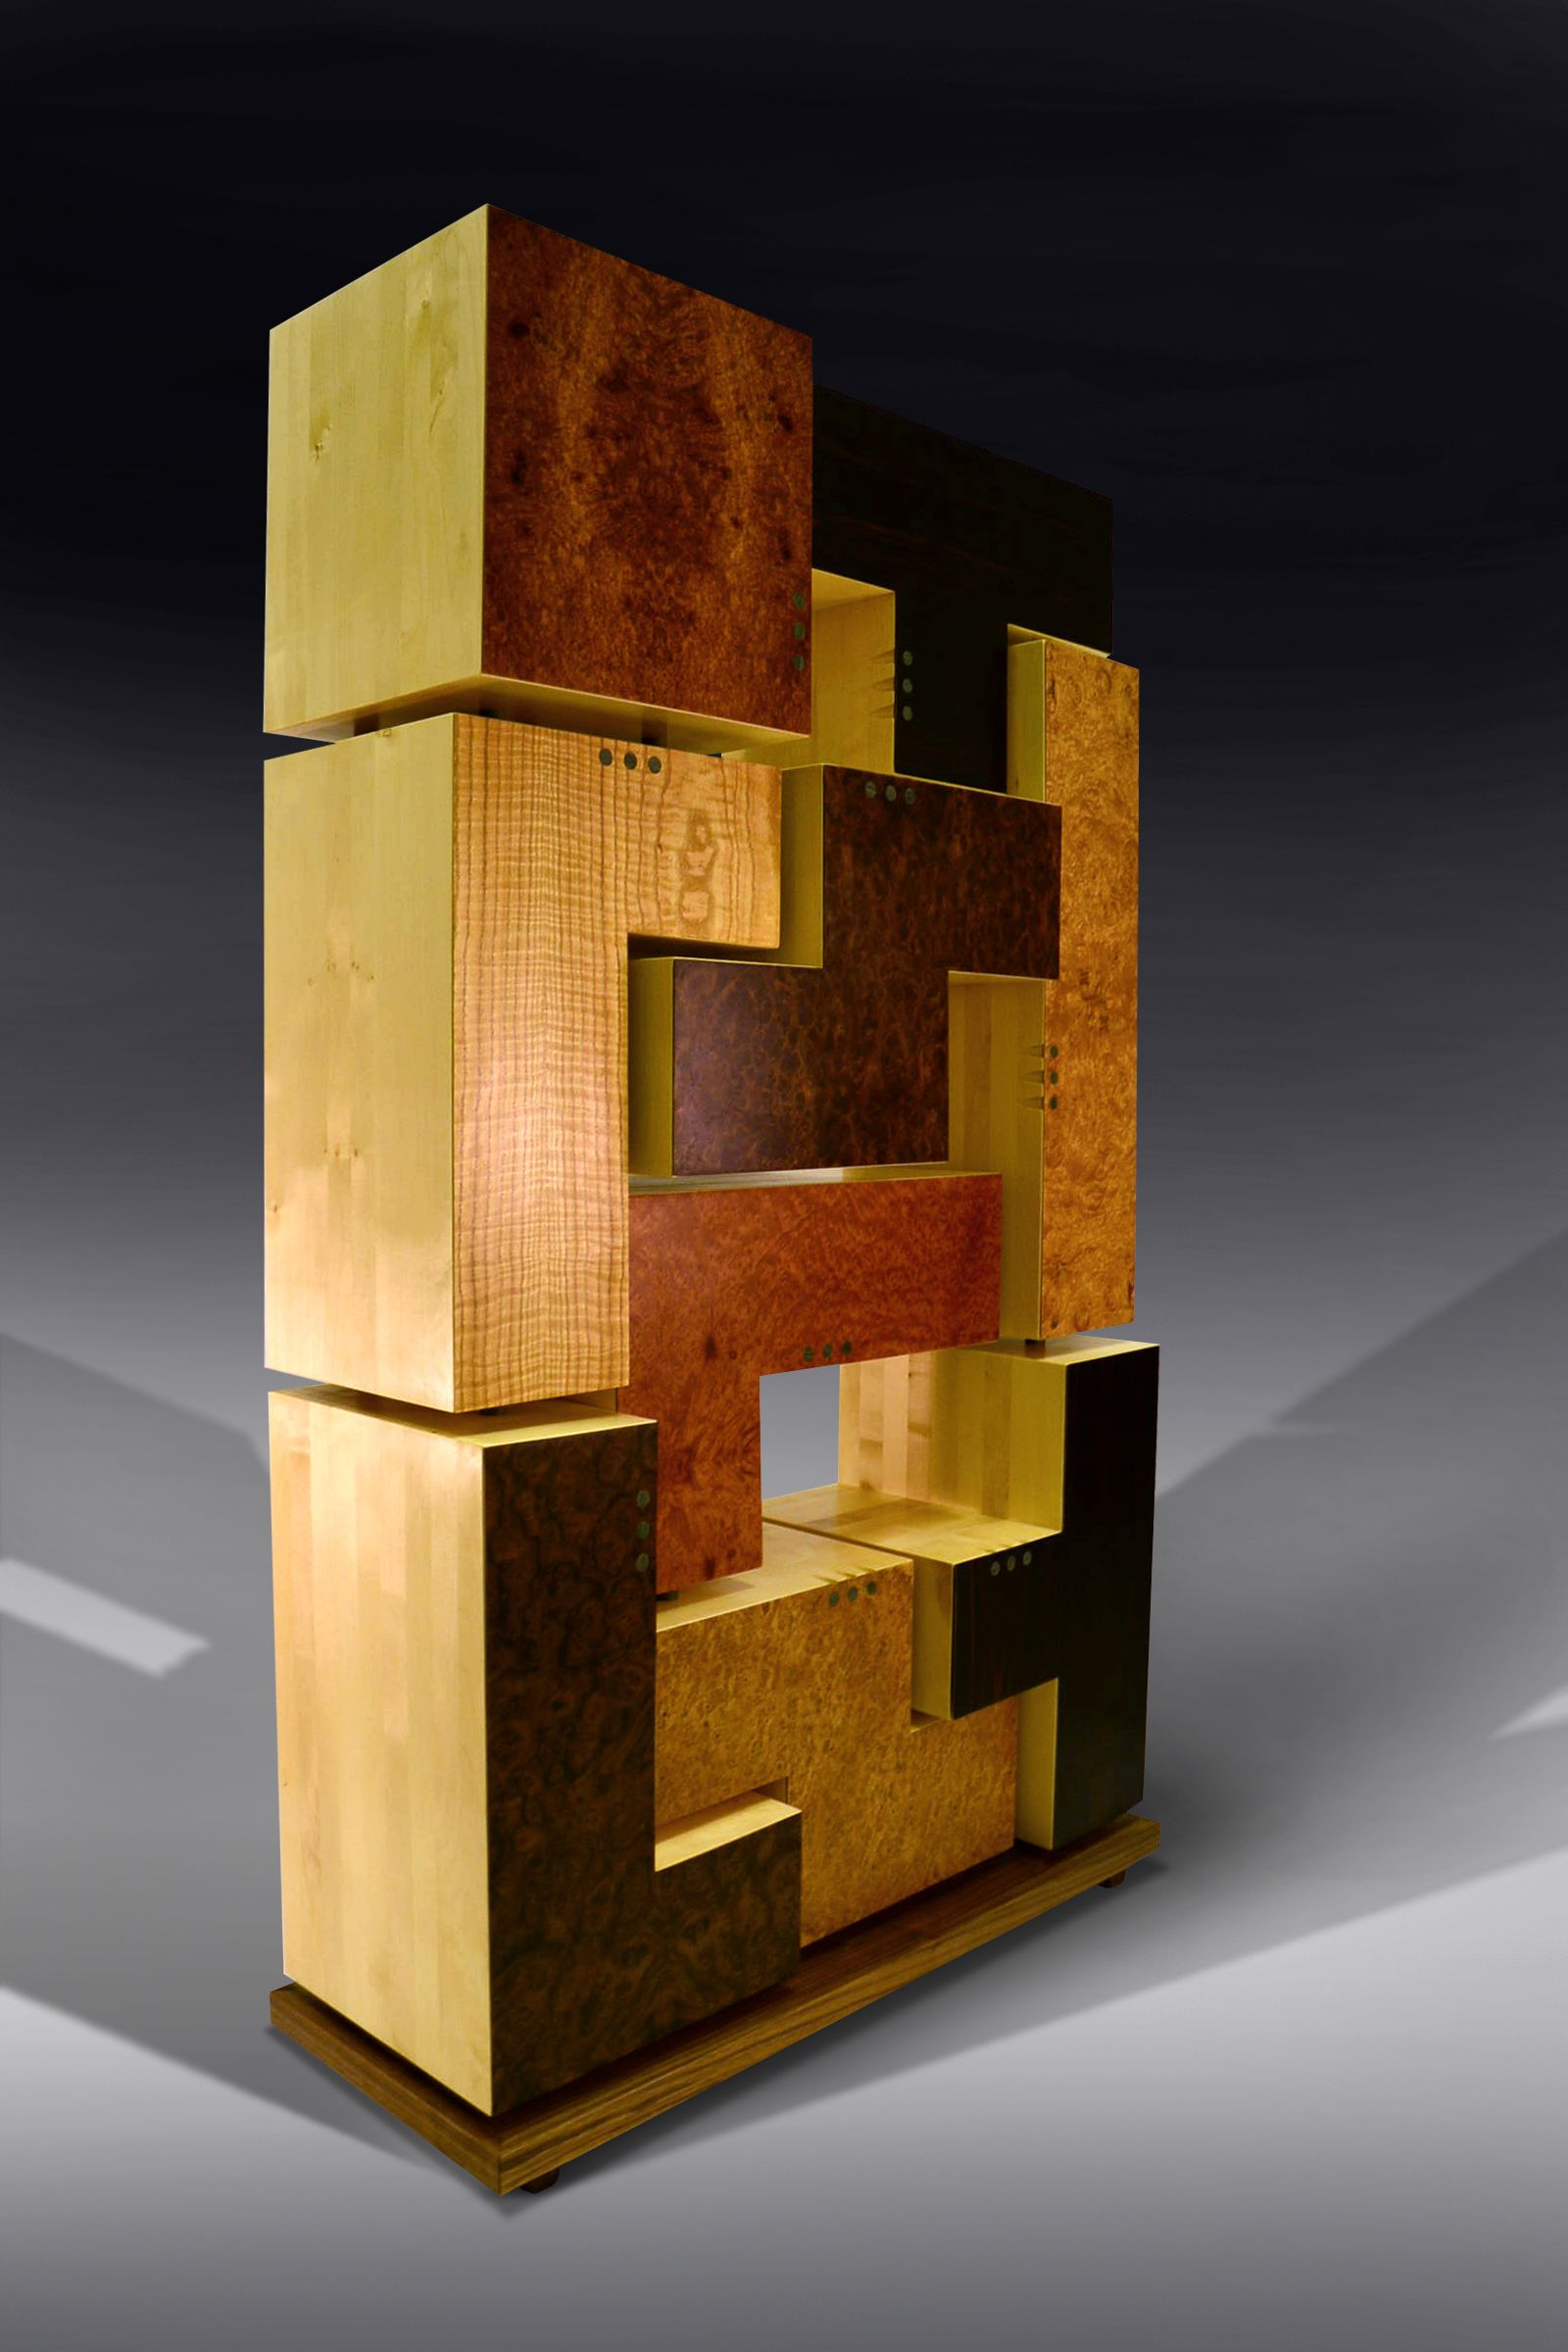 Tetris Cabinet   By Mos Bespoke Furniture. The Shapes In This Highly  Unusual Storage Cabinet Were Inspired By The Cult Computer Game Tetris. Design